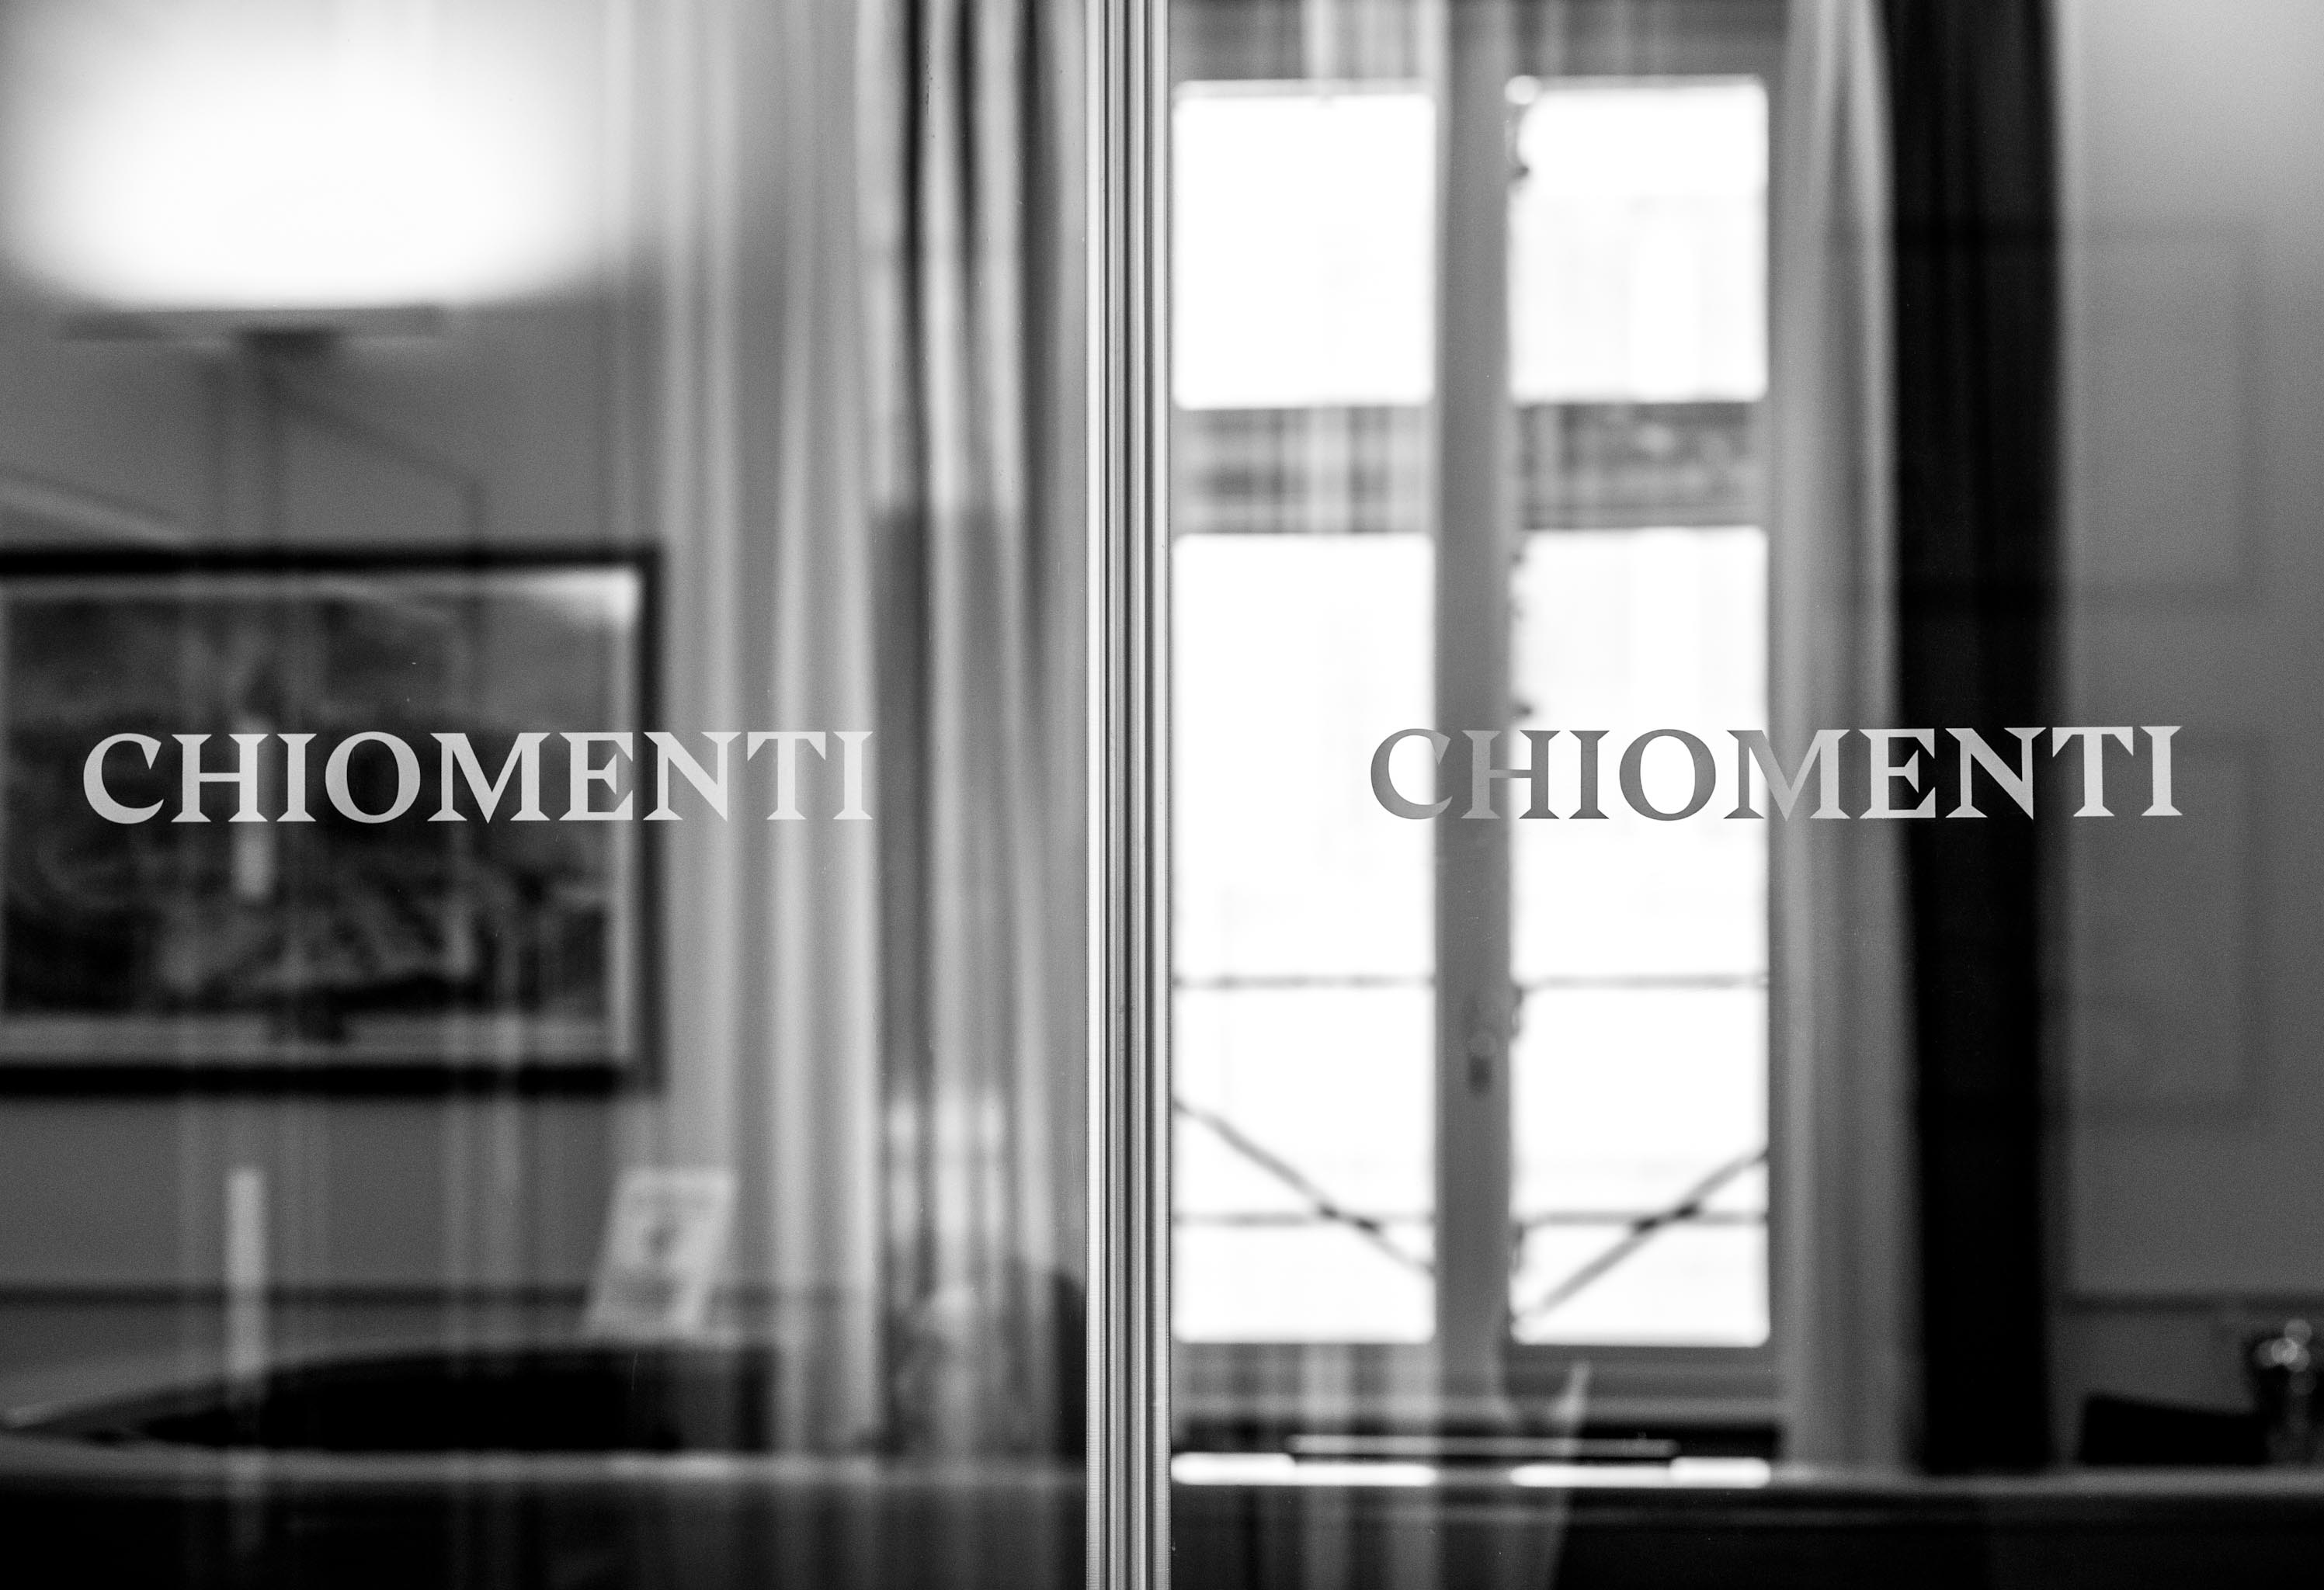 Chiomenti strengthens and consolidates its leadership in finance and financial institutions advisory